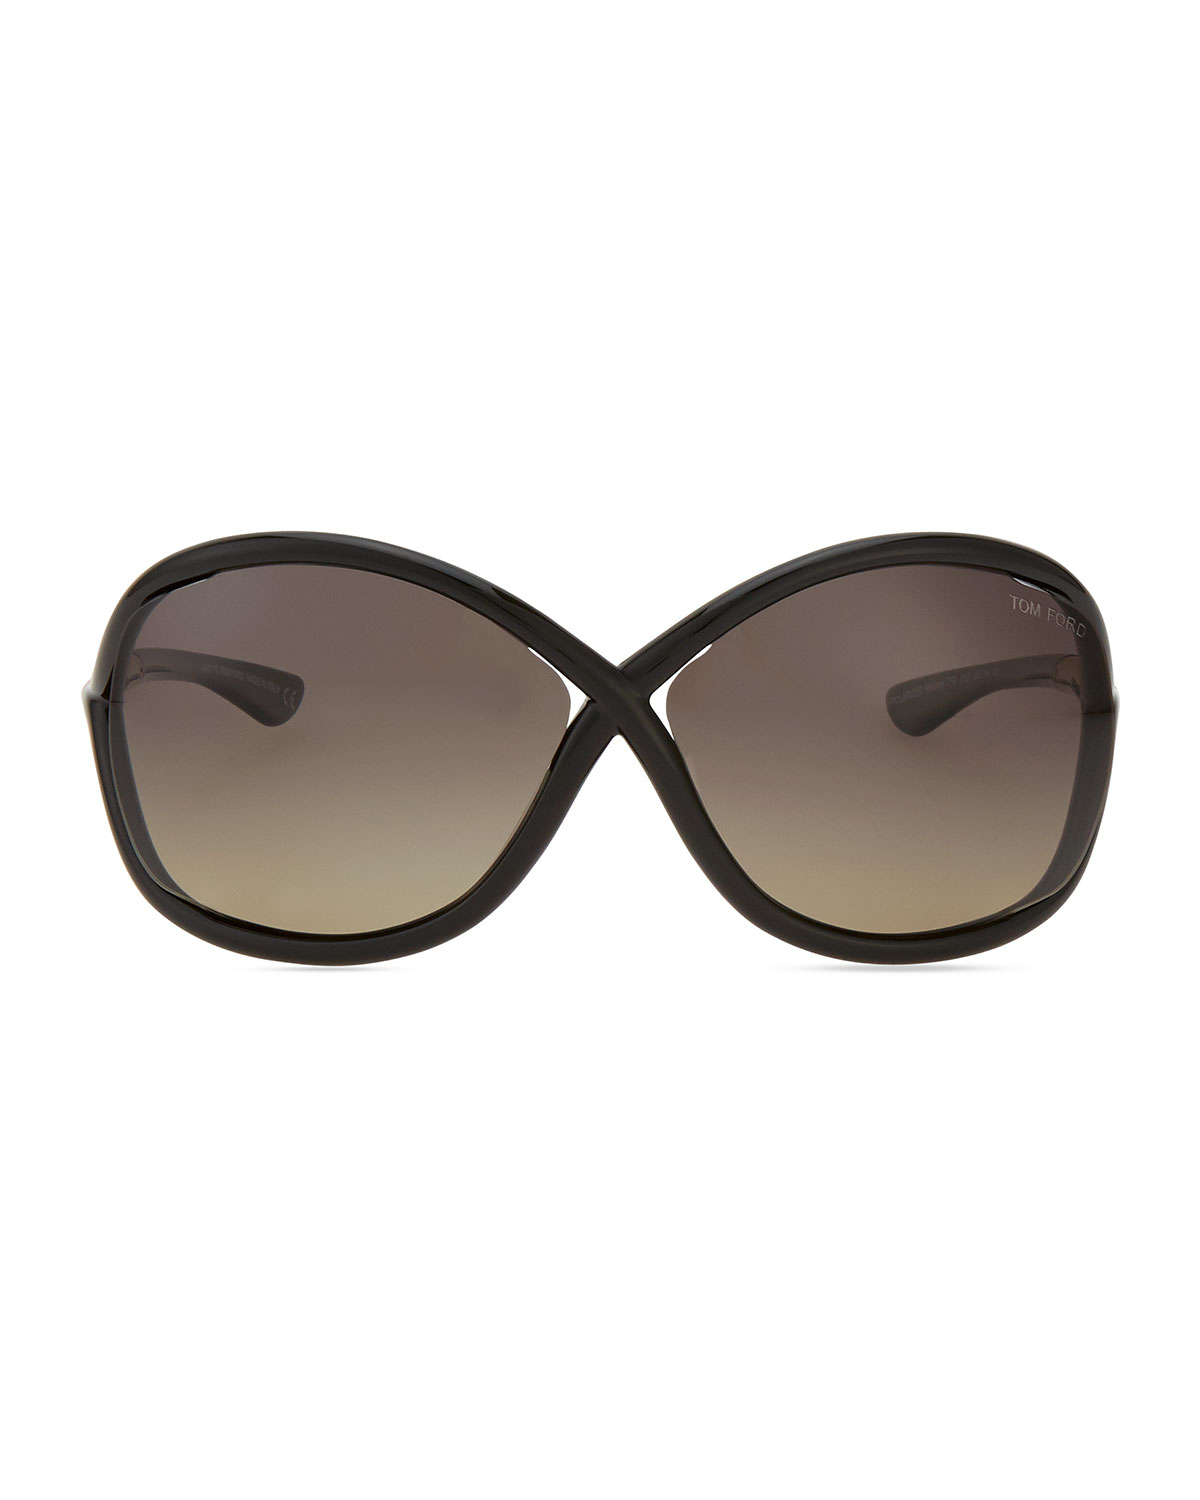 fd5217849a7 Lyst - Tom Ford Whitney Polarized Cross Sunglasses in Black